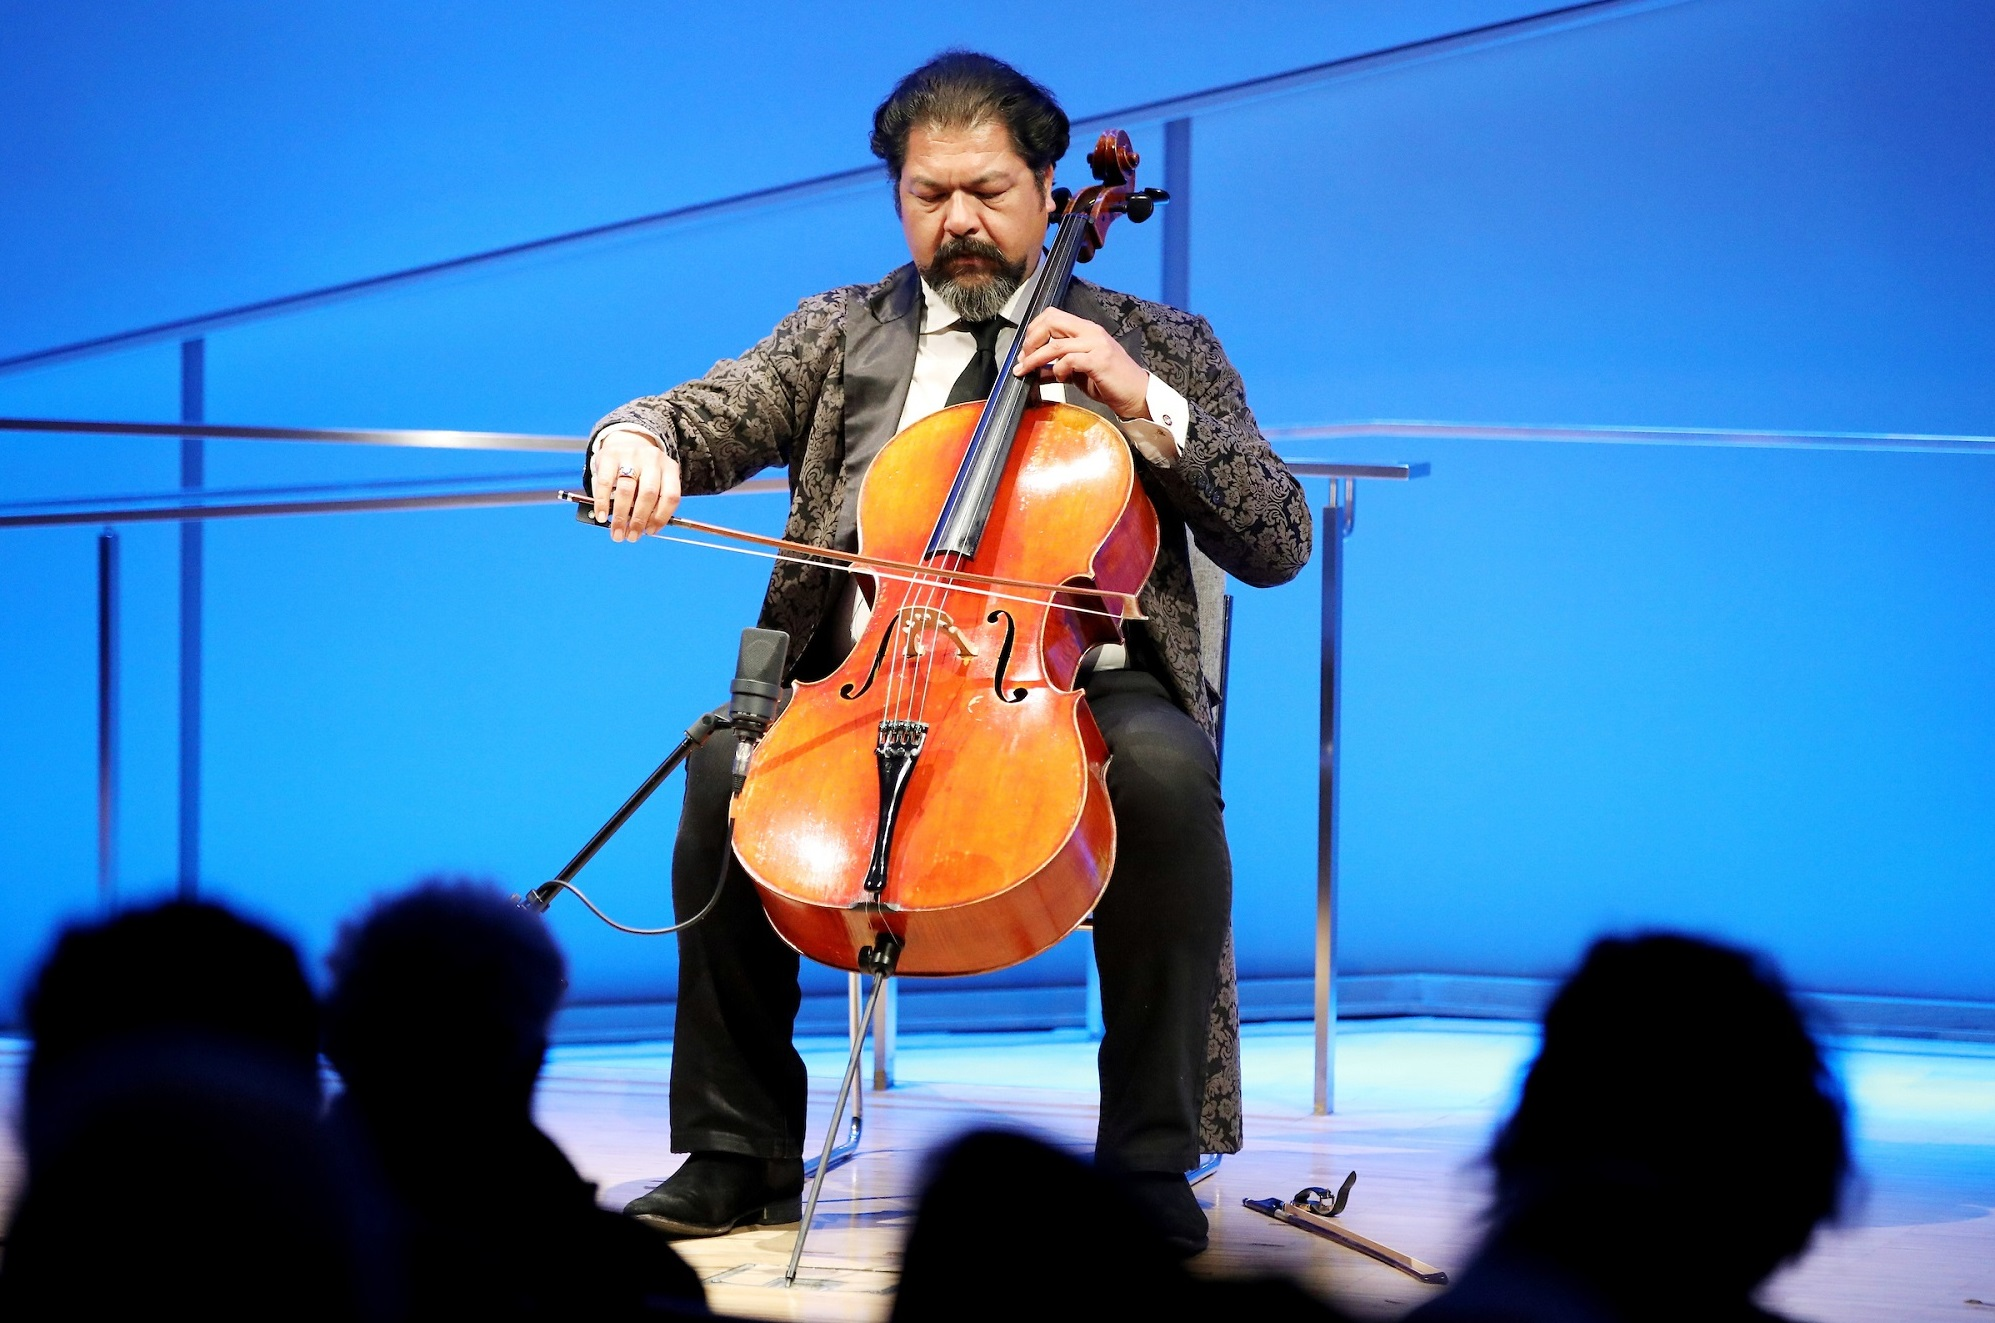 Cellist Karim Wasfi performs while seated onstage at the Museum auditorium. His eyes are closed as if he's concentrating. His right hand grasps the bow as his left hand moves along the strings. His bright orange-brown cello contrasts with the blue lights of the stage. The silhouettes of several audience members are visible in the foreground.